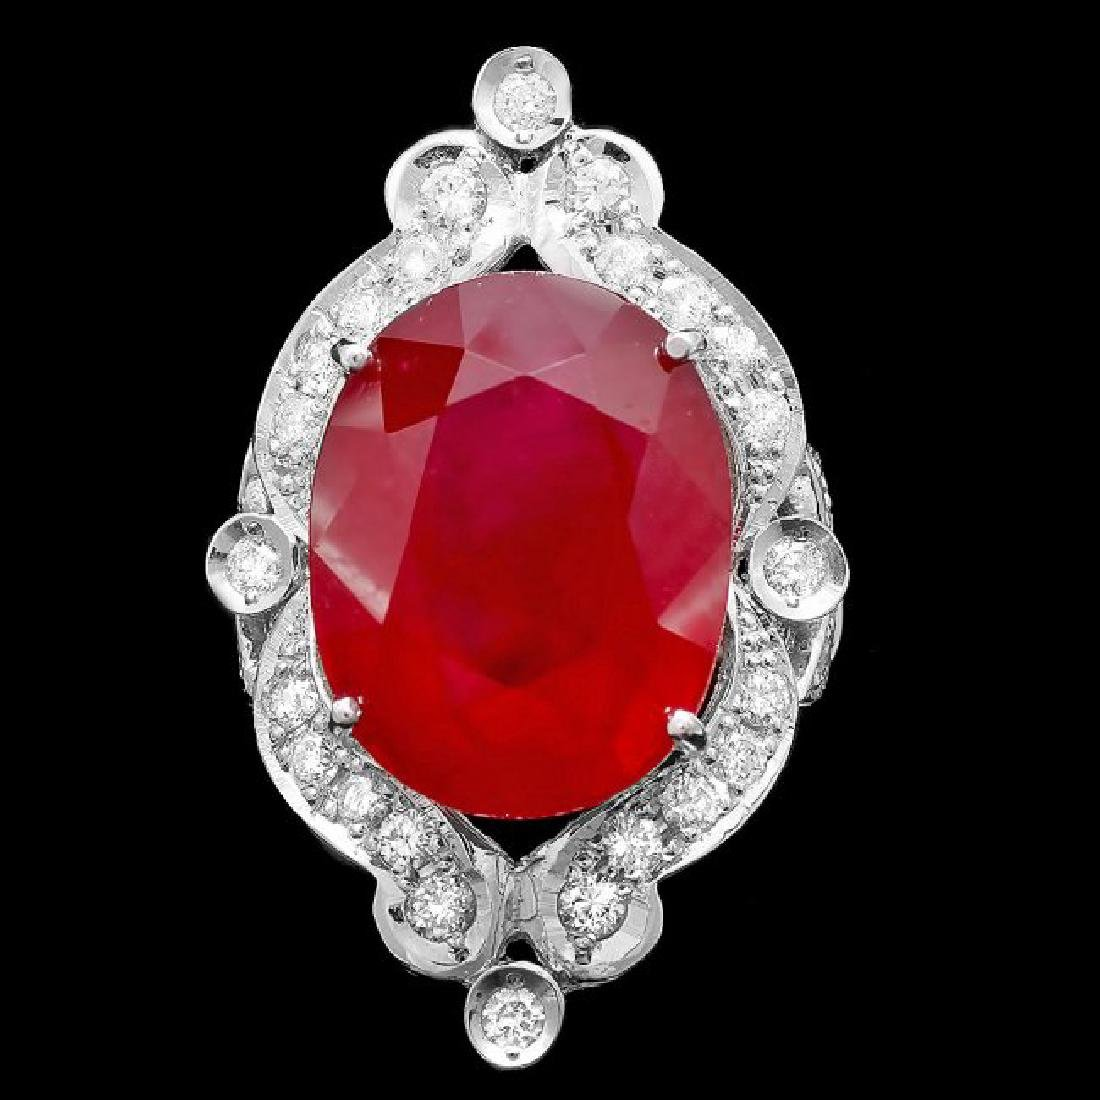 14k White Gold 22.00ct Ruby 1.30ct Diamond Ring - 3